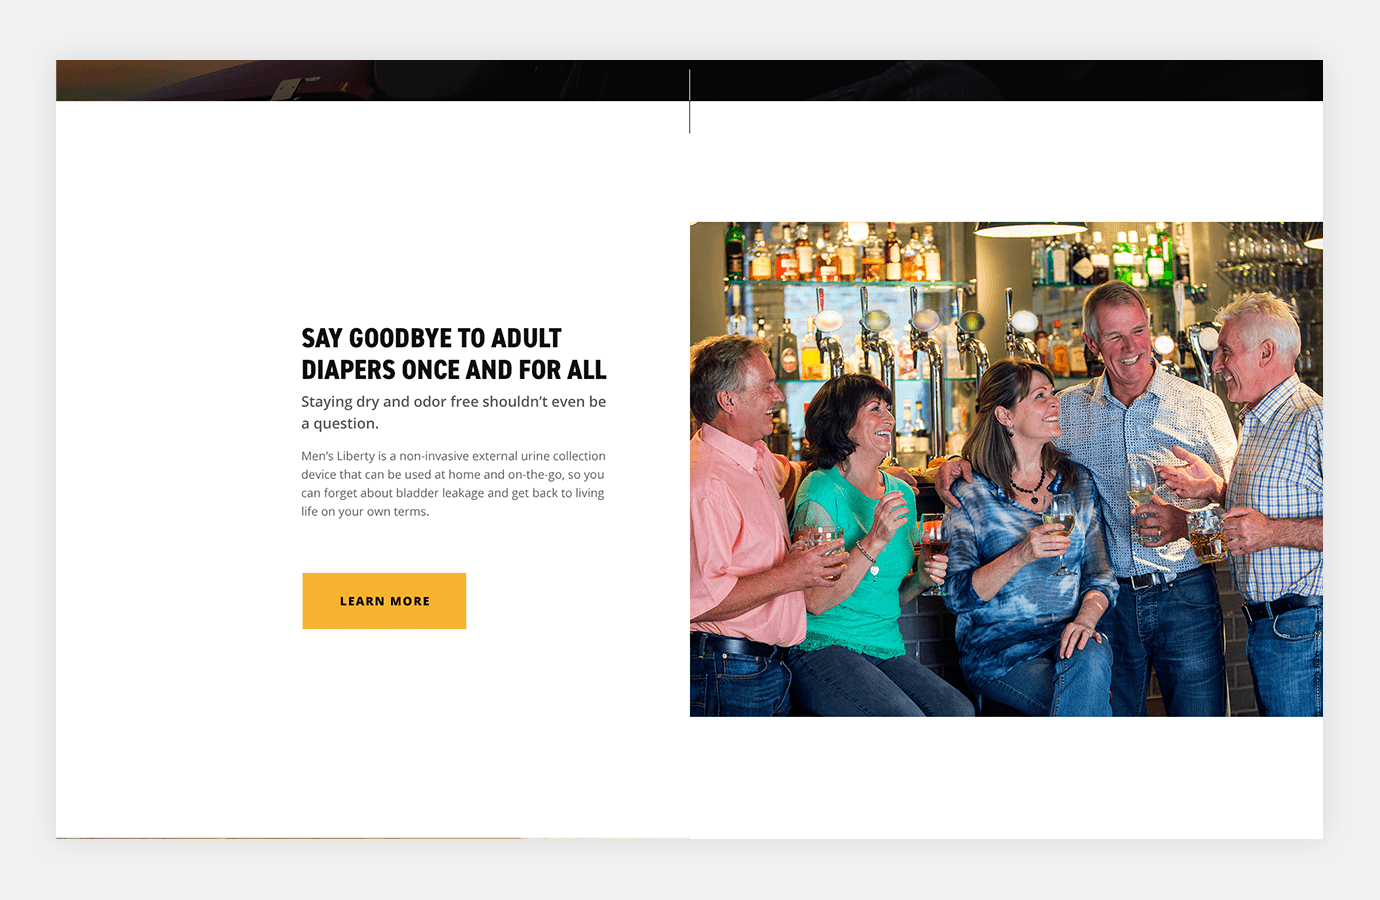 Screenshot of Men's Liberty website showing group of people laughing and drinking together